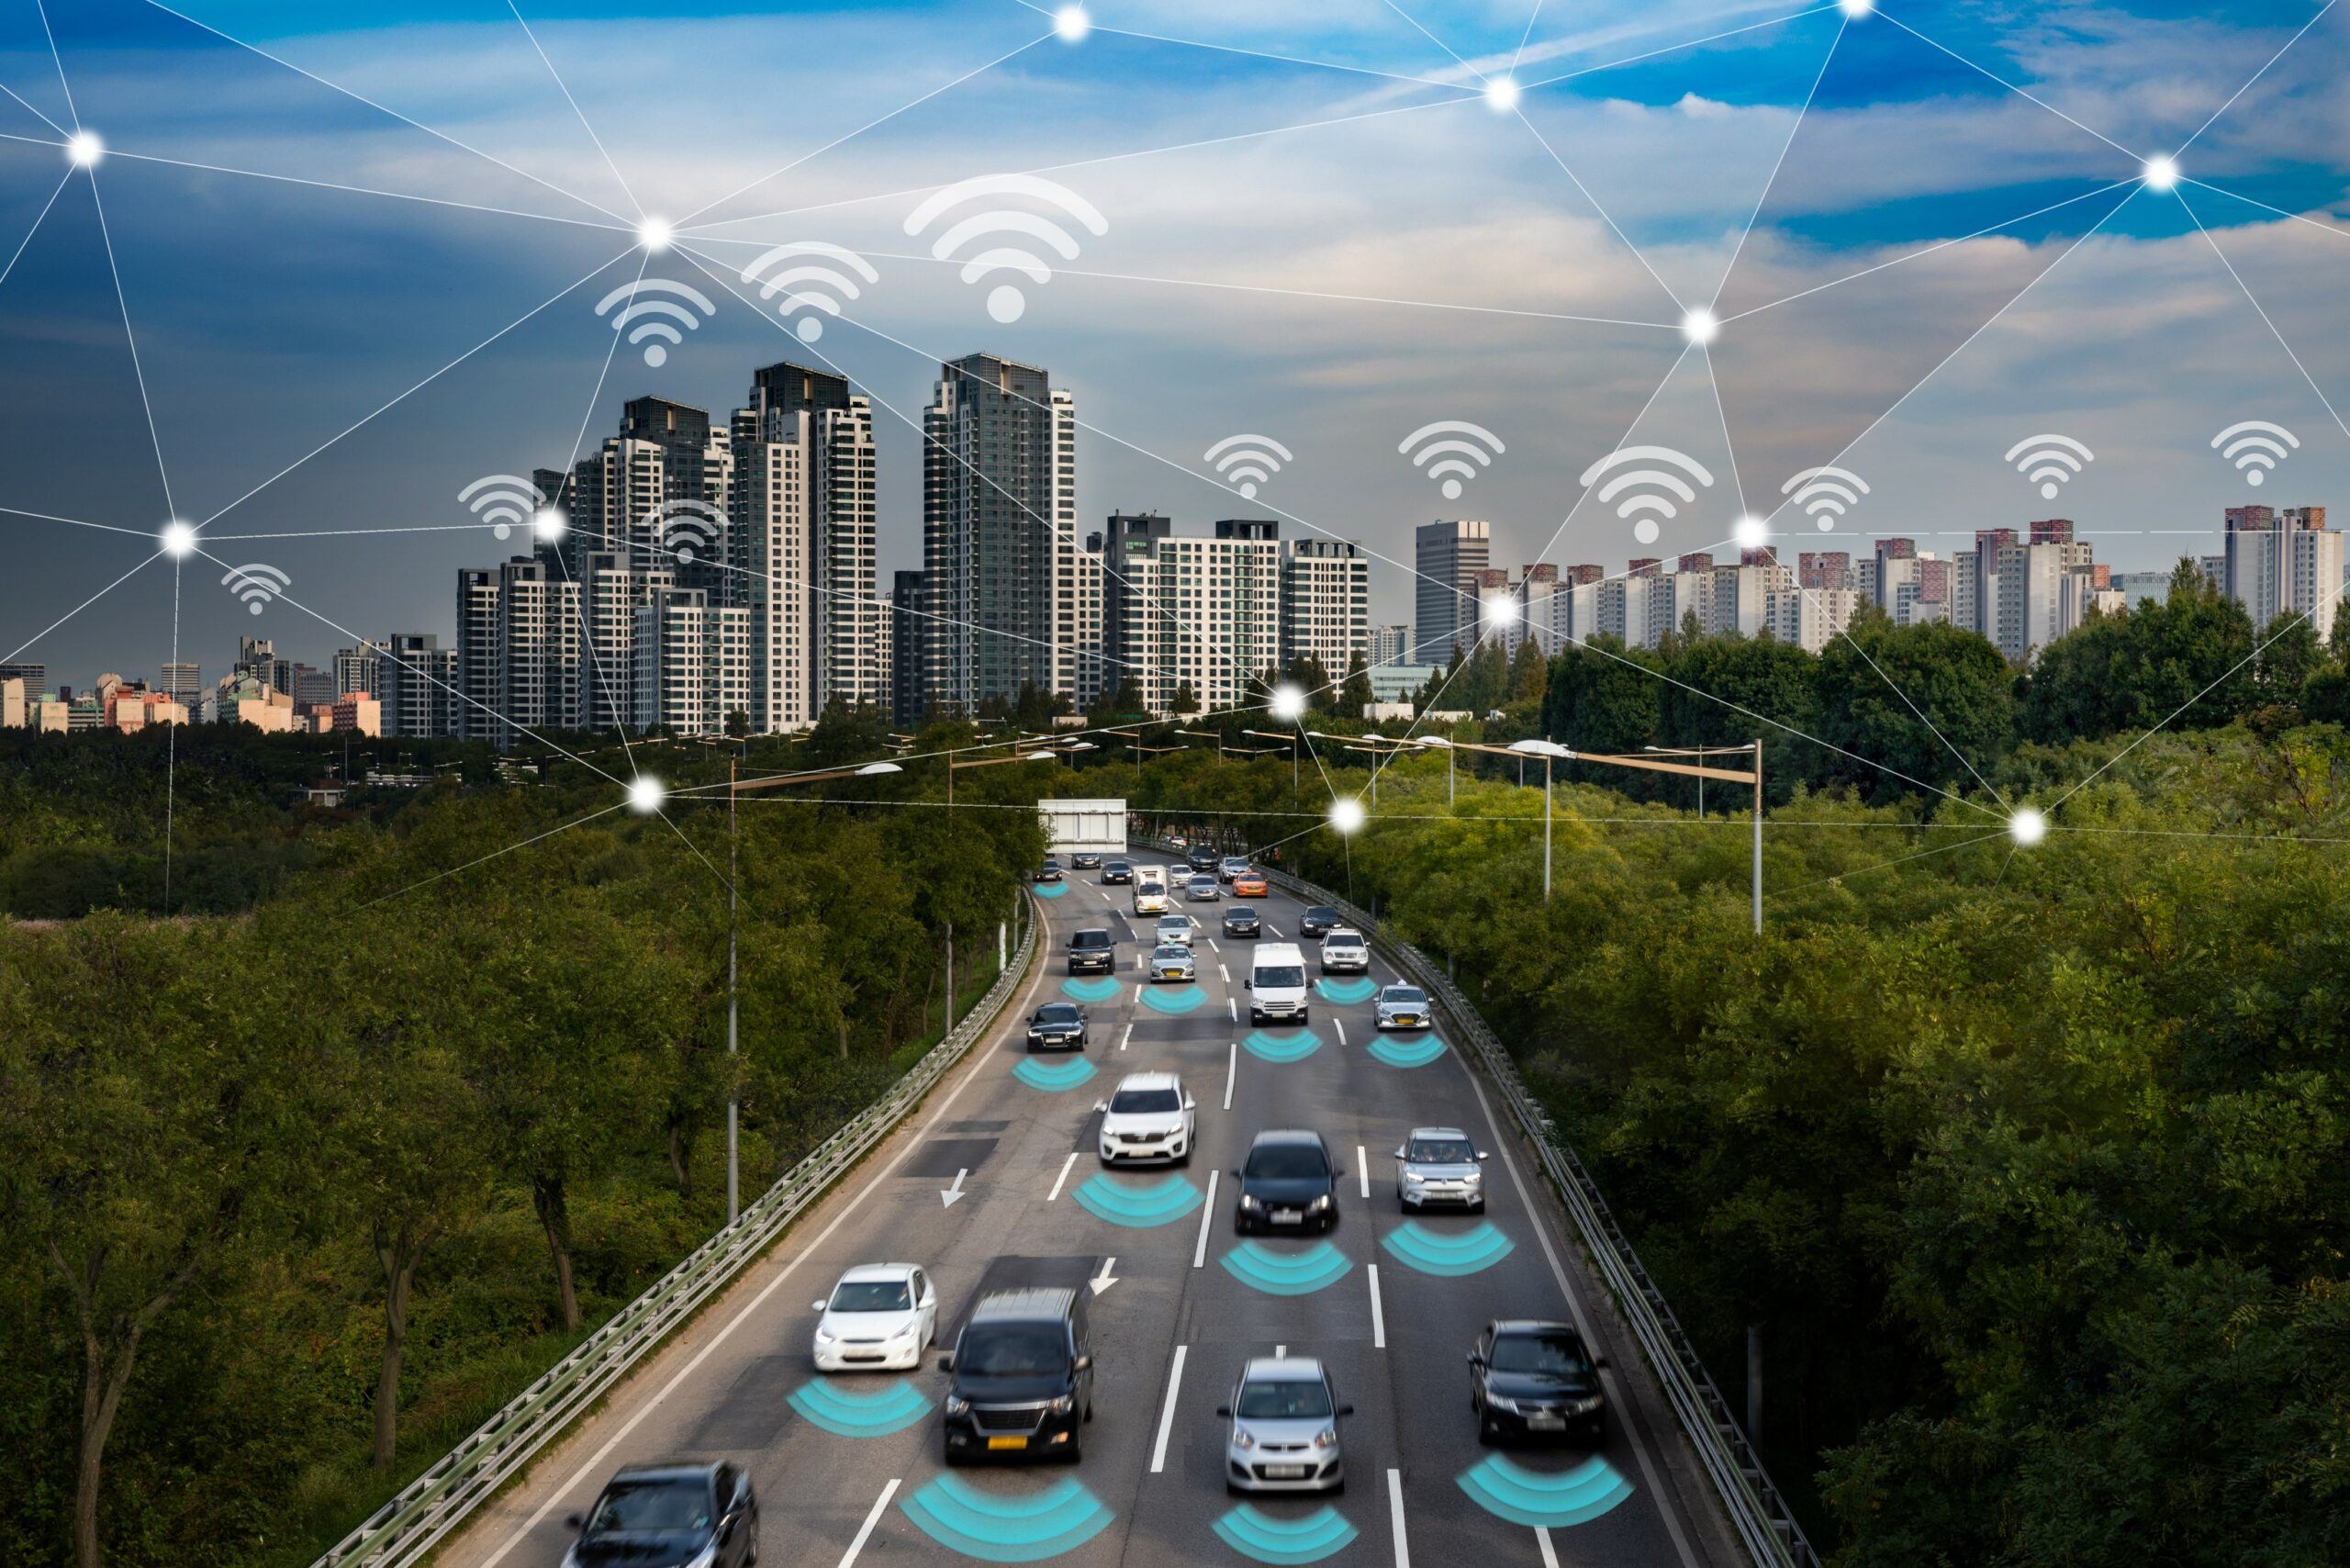 5G and Transportation